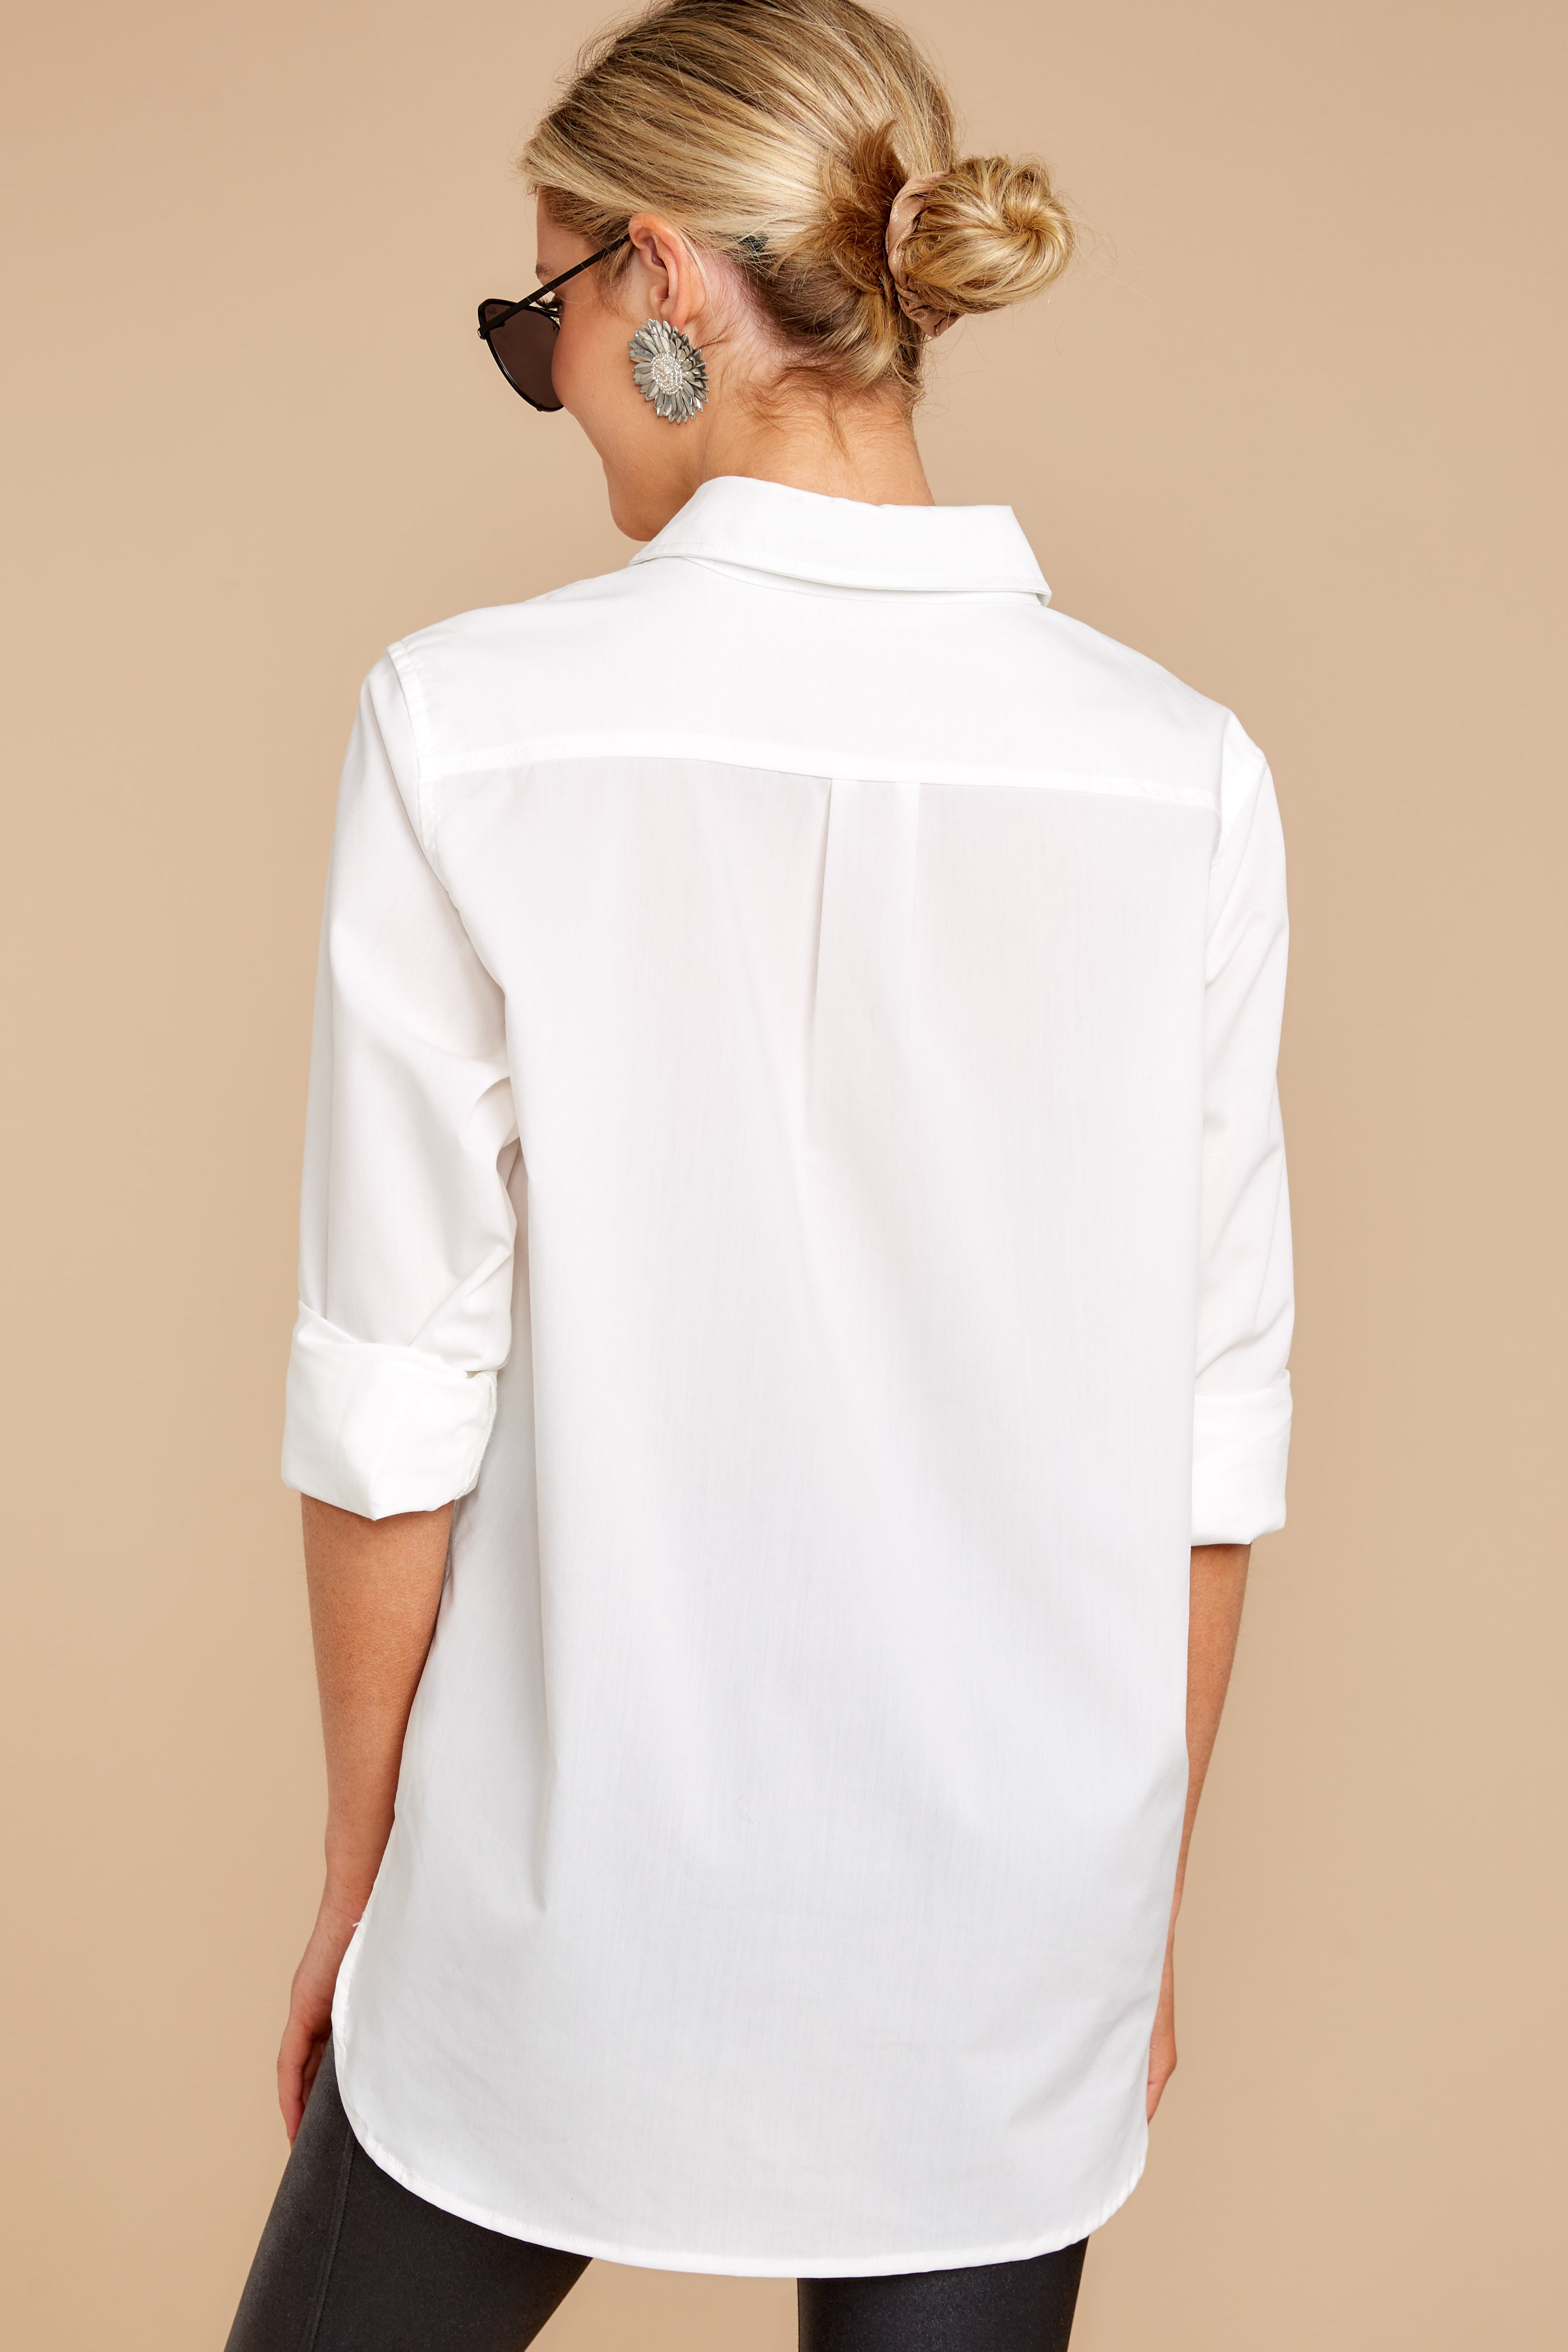 5 Not So Risky Business White Button Up Top at reddress.com